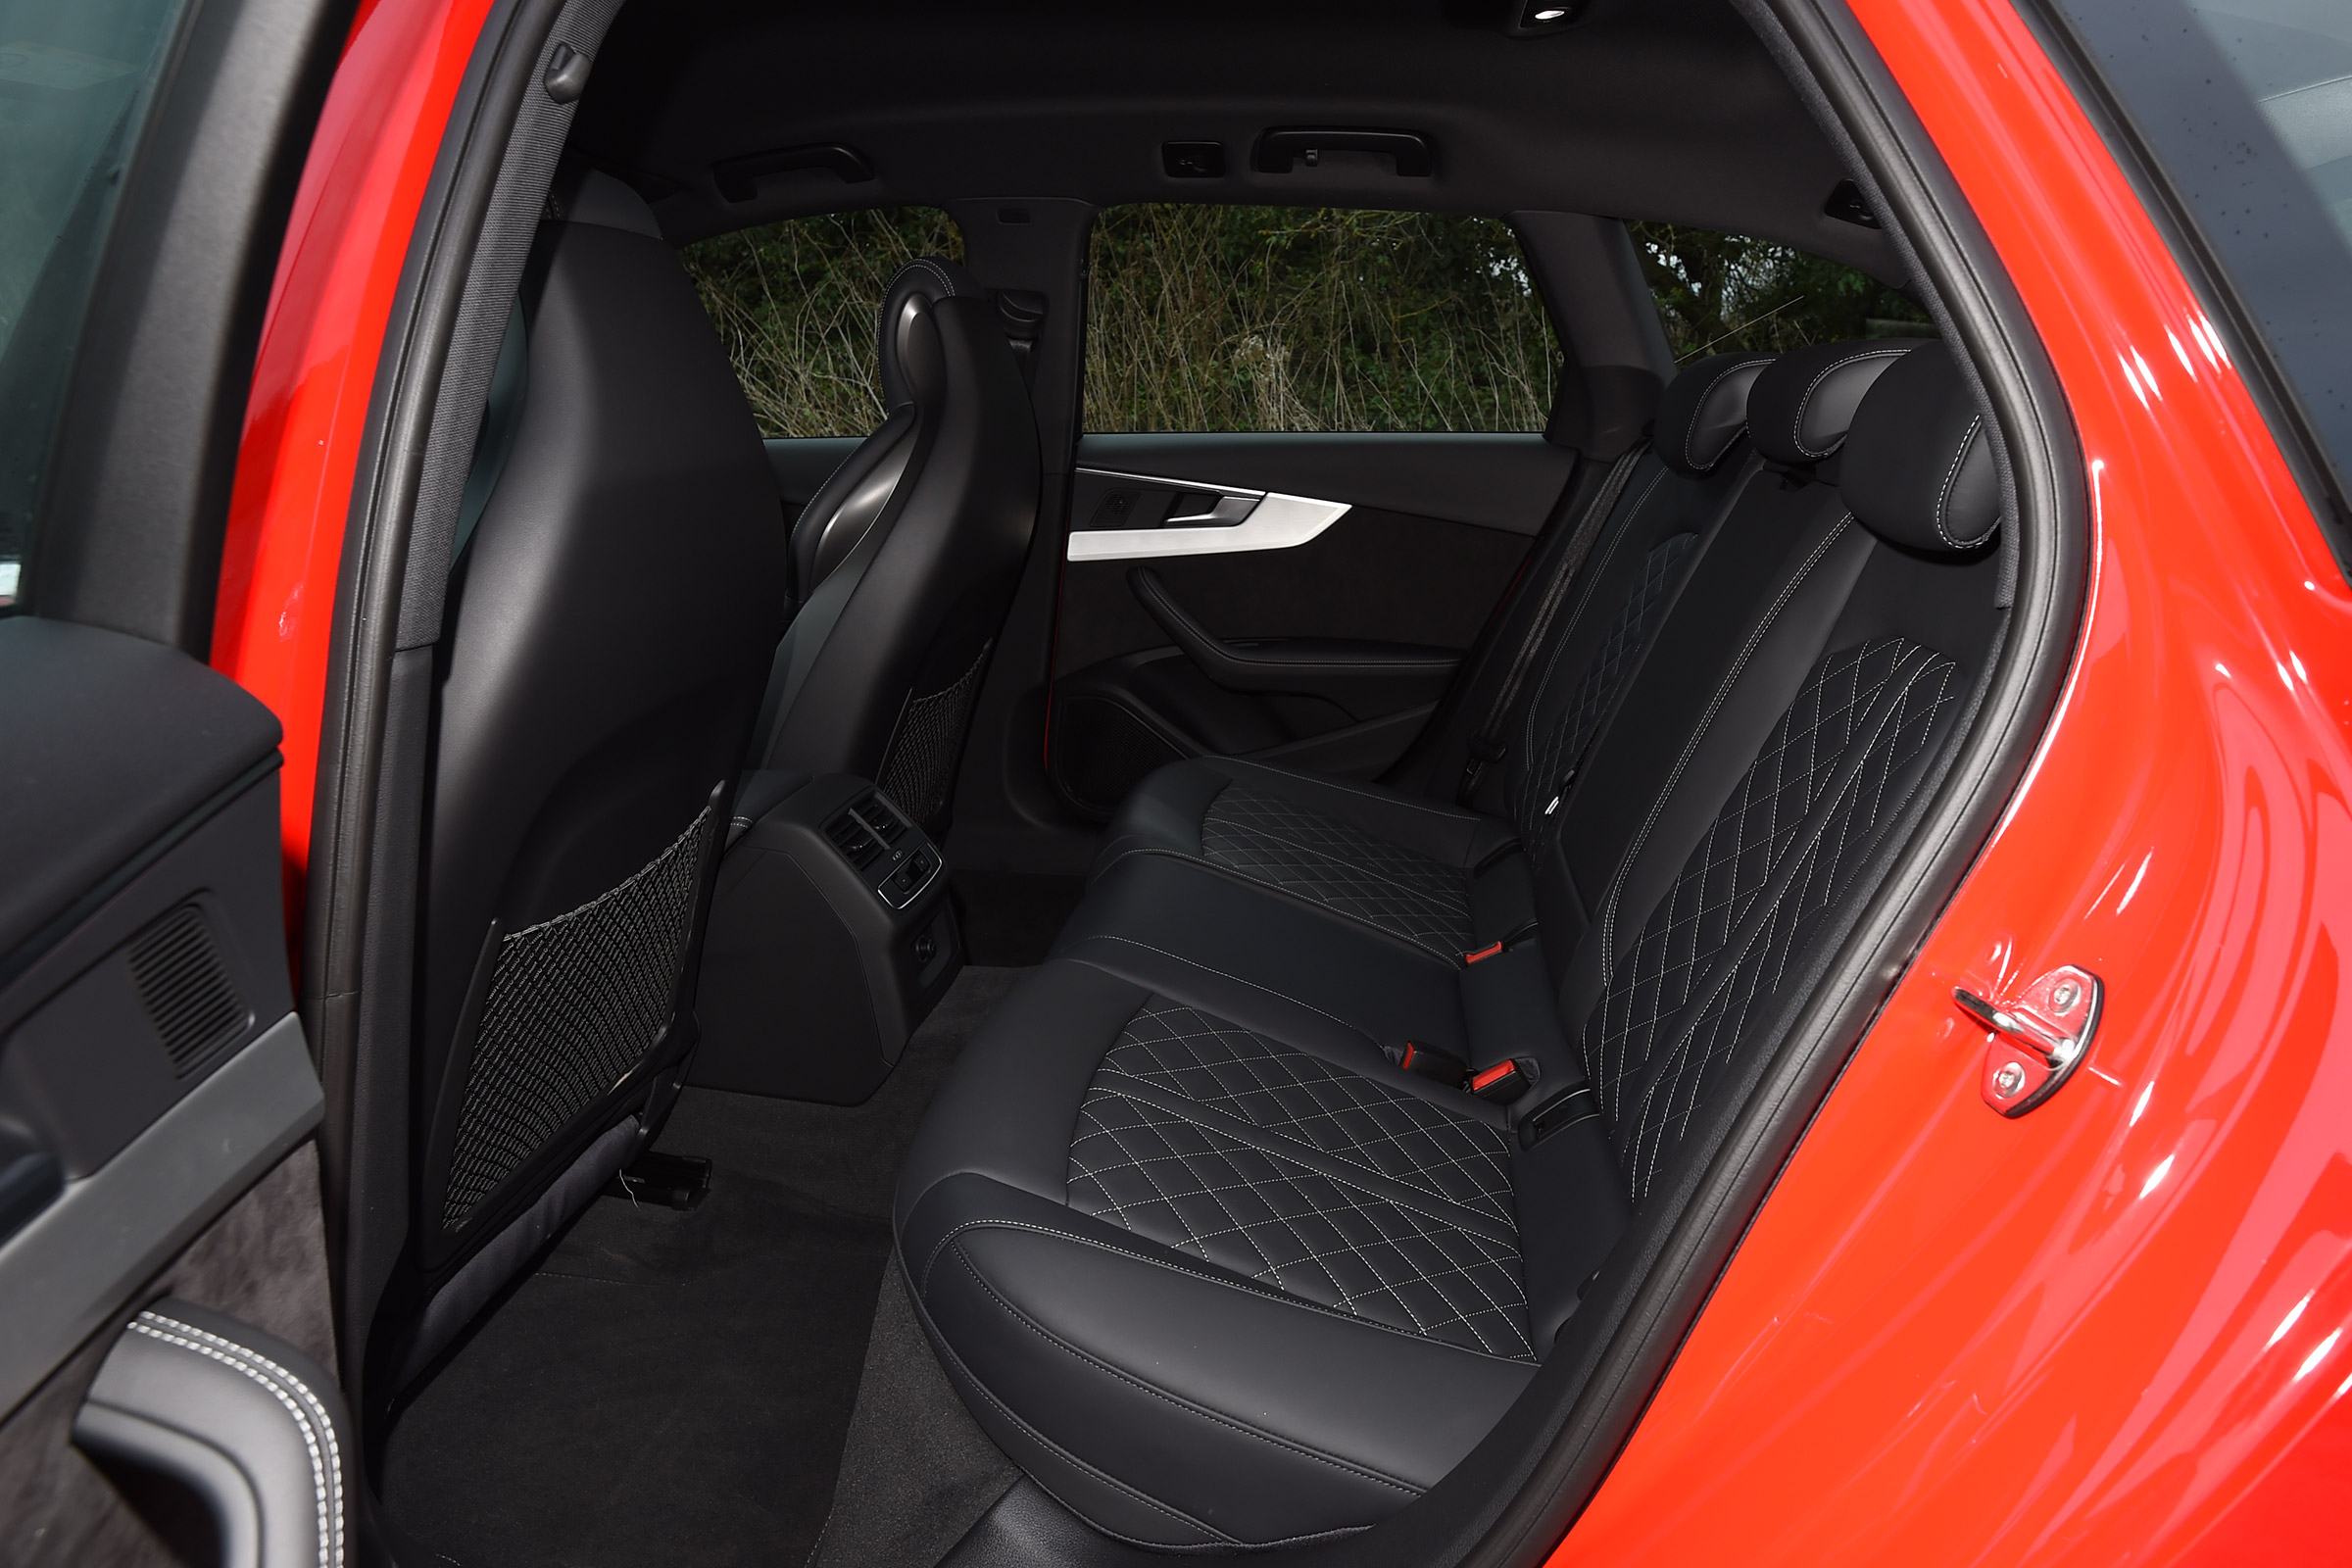 2017 Audi S4 Avant Interior Seats Rear (Photo 8 of 17)